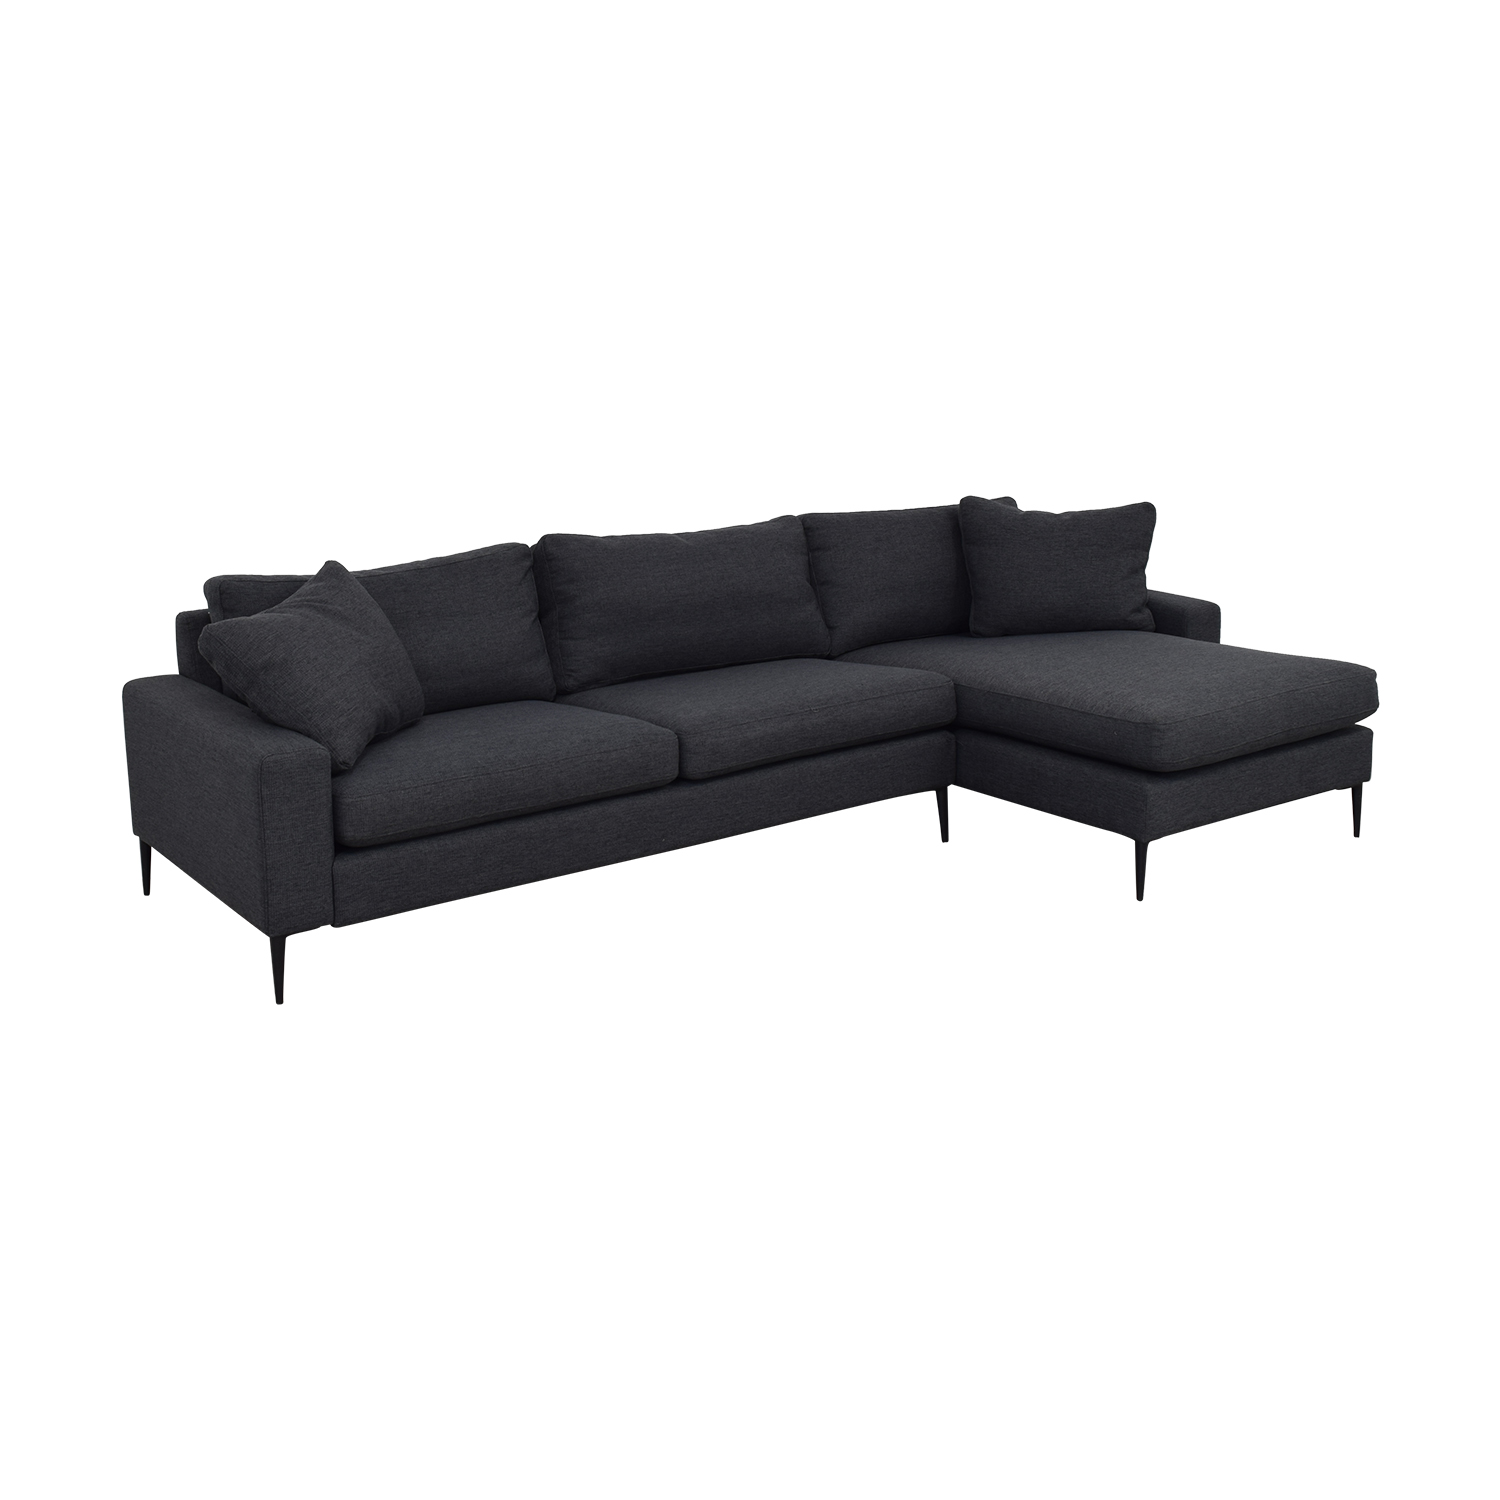 shop Article Article Sven Right Sectional online